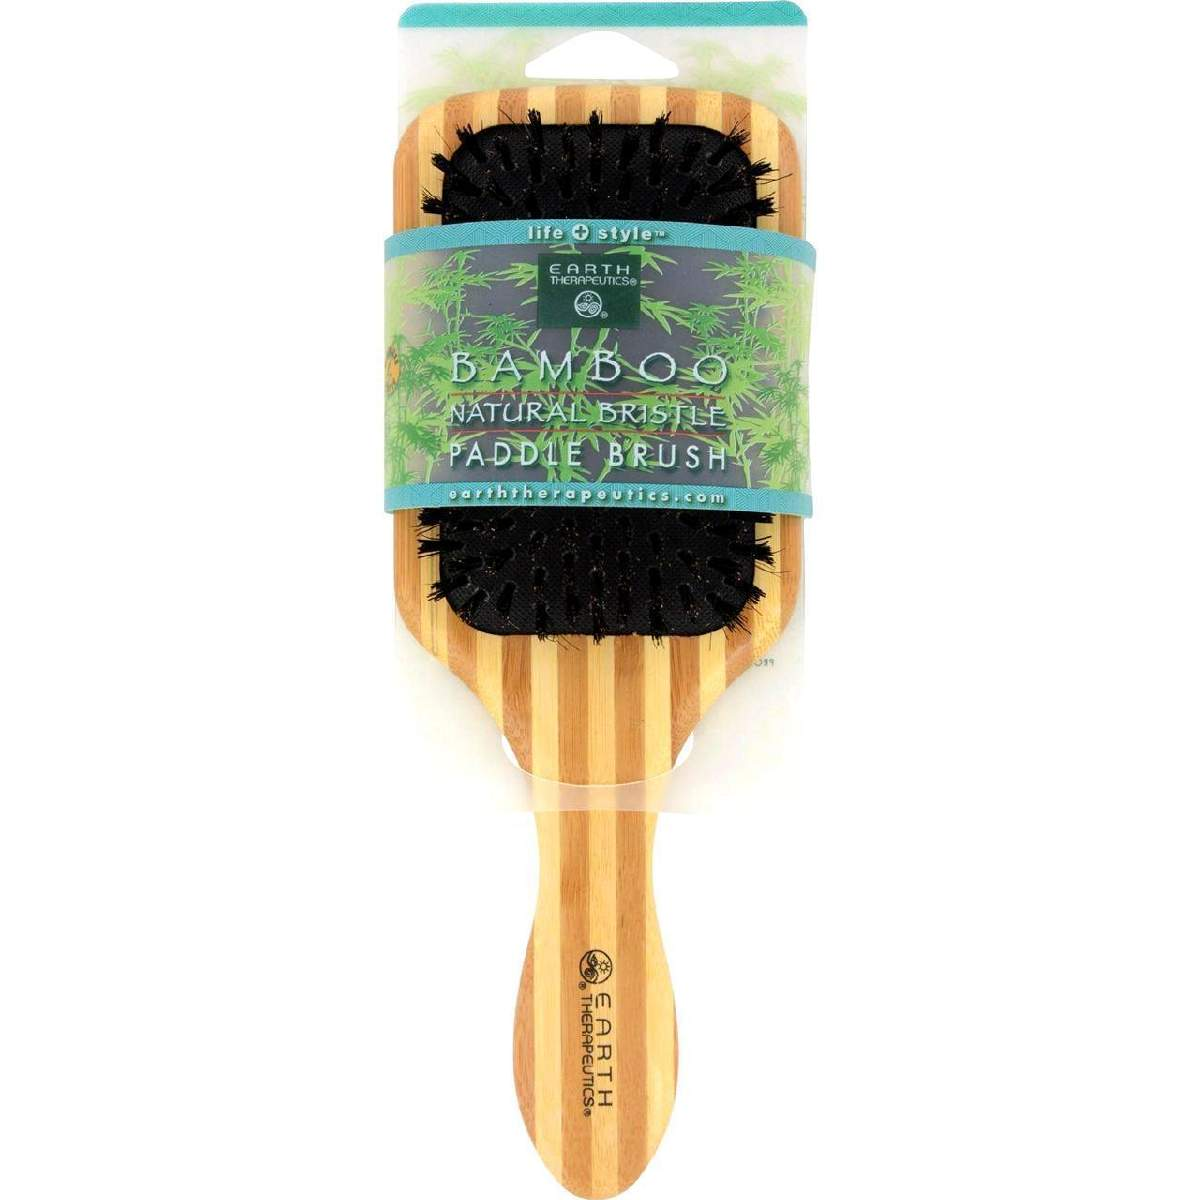 Earth Therapeutics Large Bamboo Natural Bristle Paddle Brush - 1